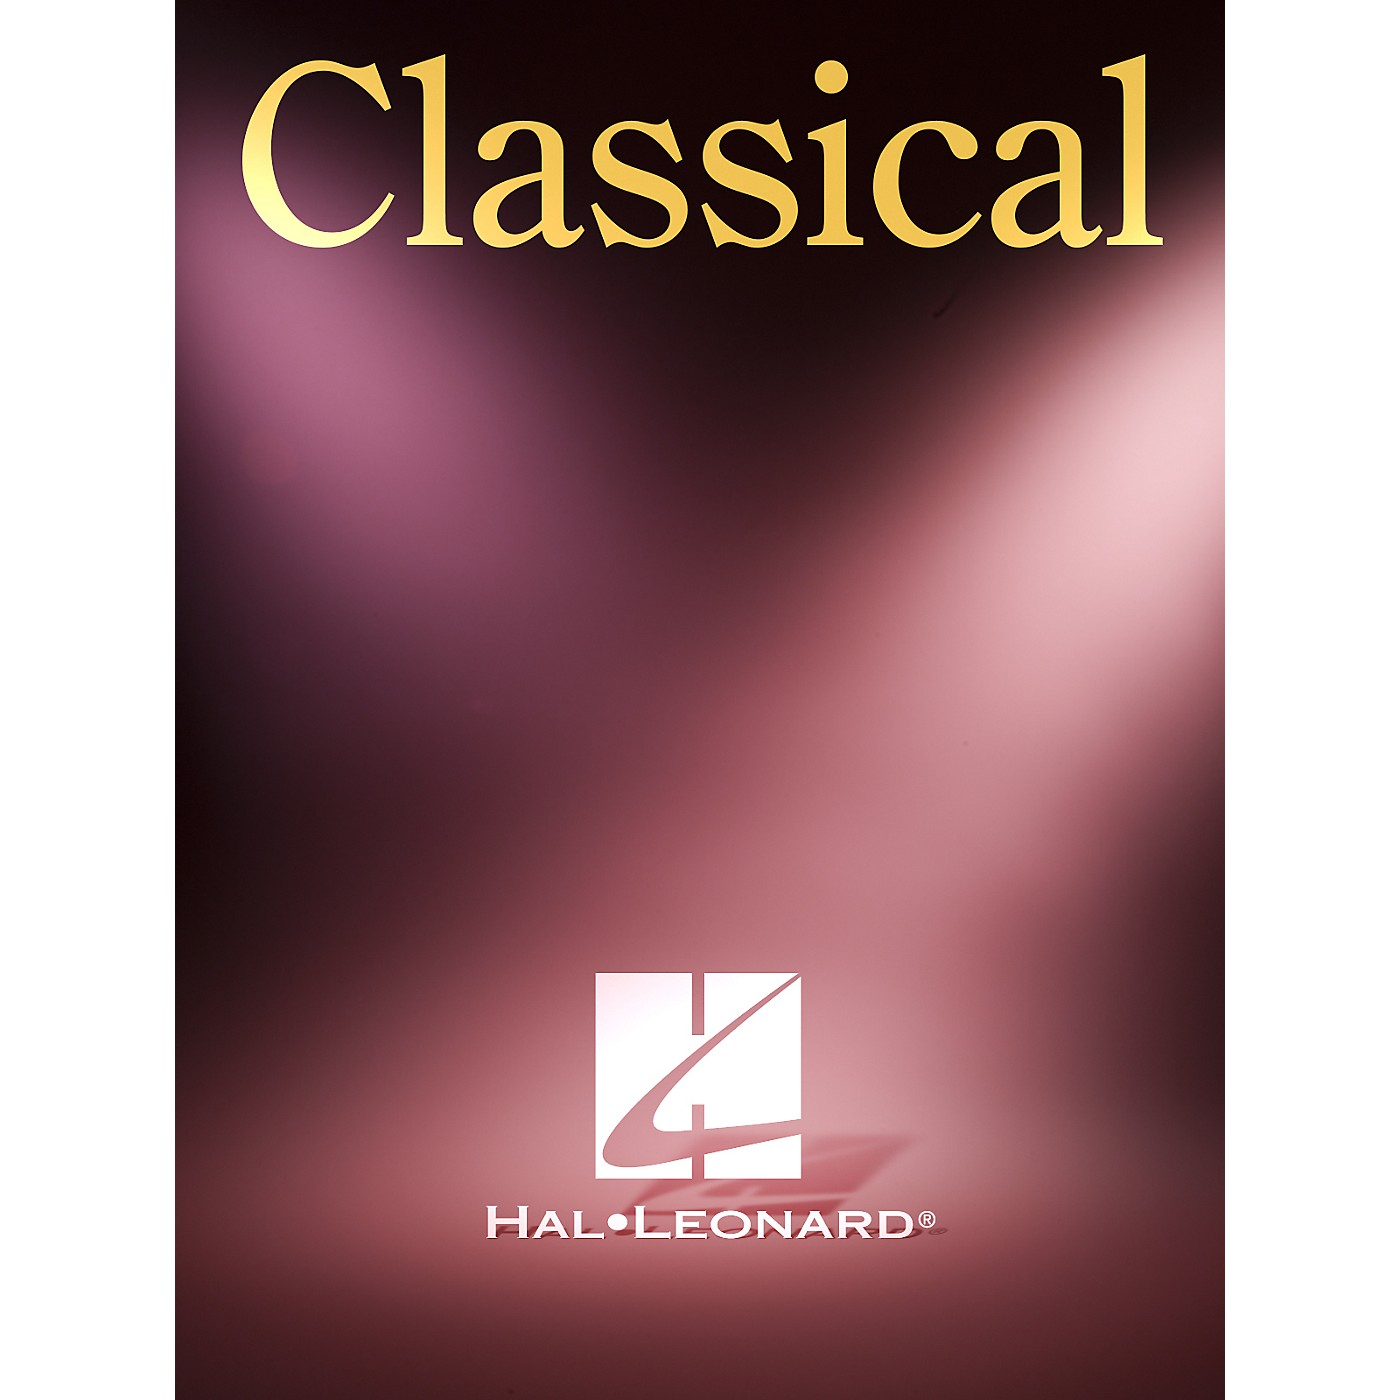 Hal Leonard Sequenza N. 1 (Japanees) Suvini Zerboni Series by Luciano Berio thumbnail